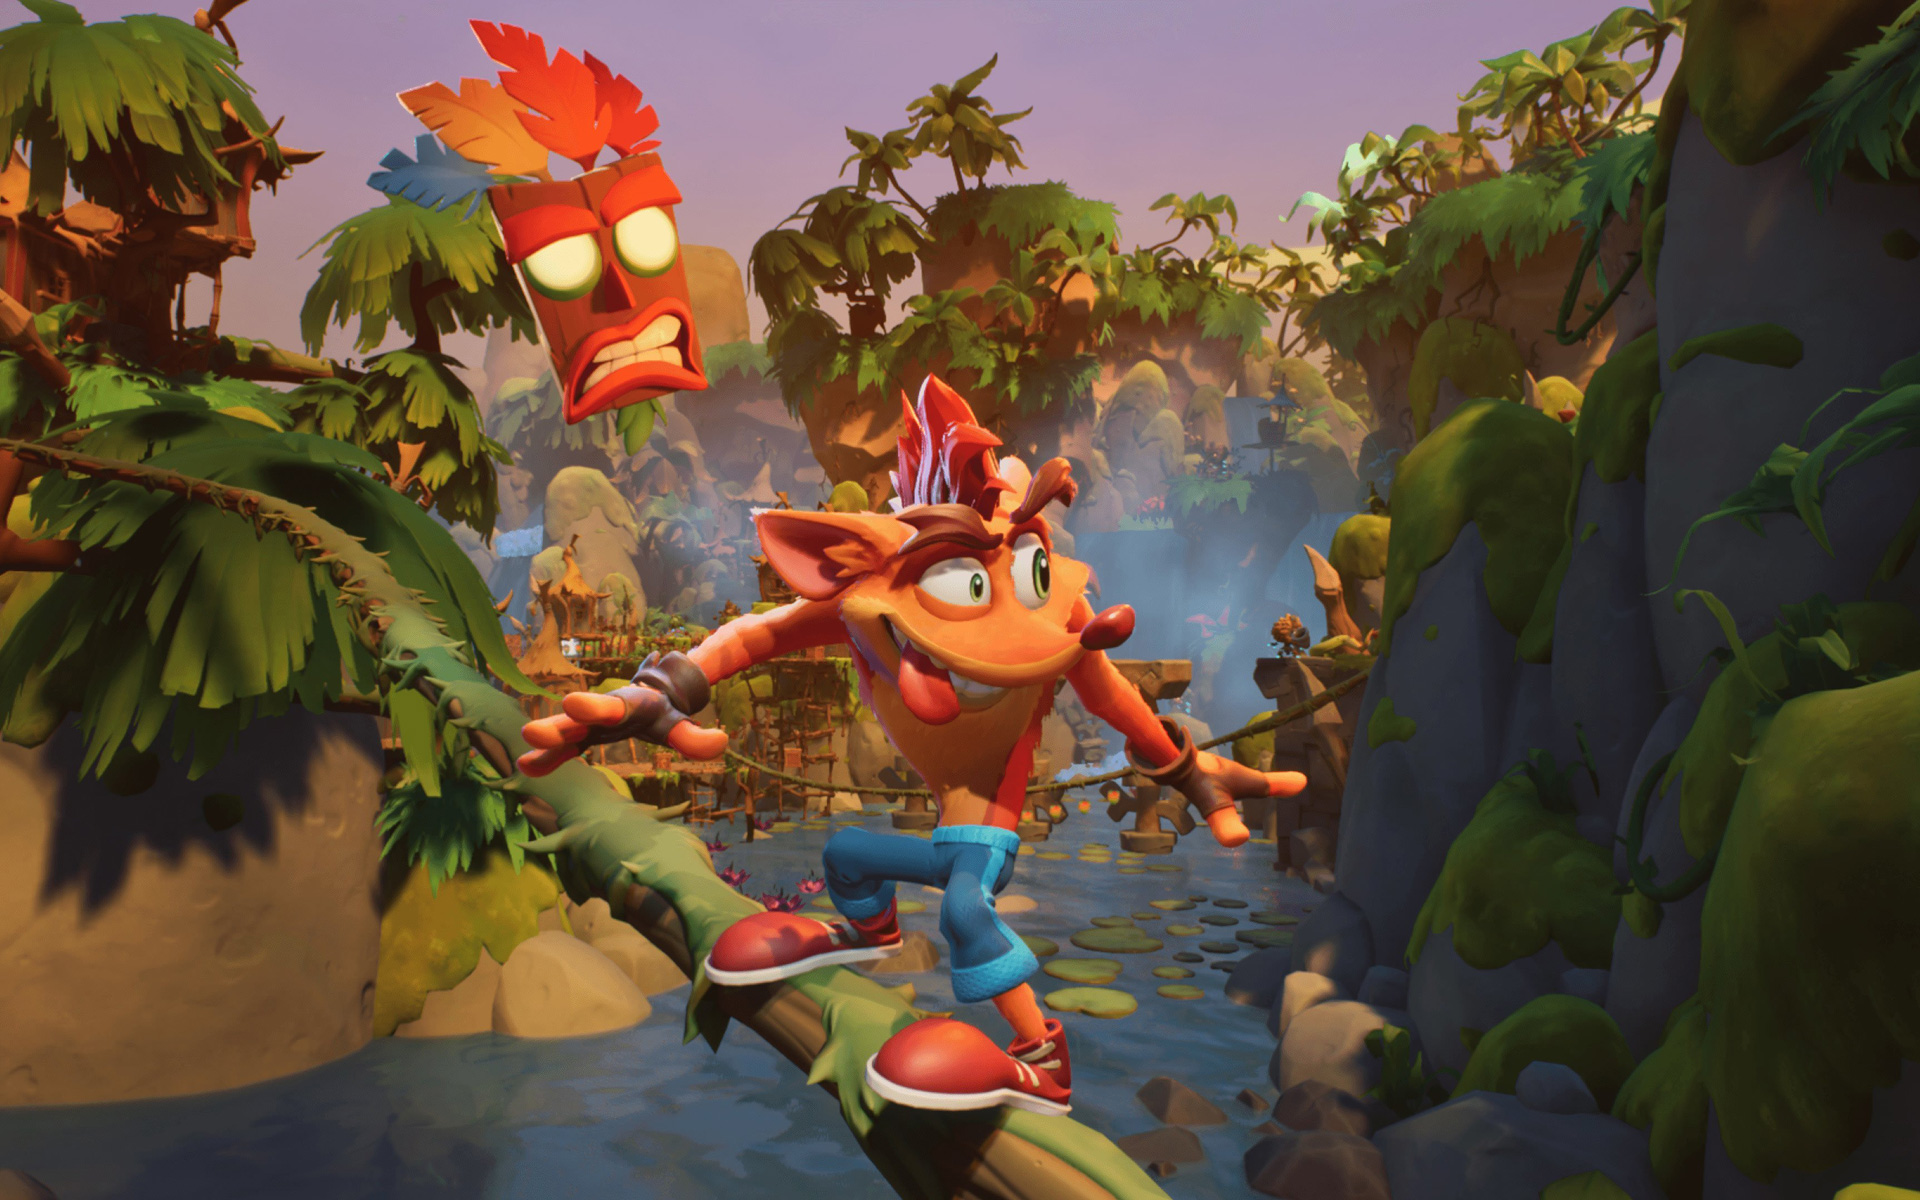 Crash Bandicoot 4: It's About Time Wallpaper in 1920x1200